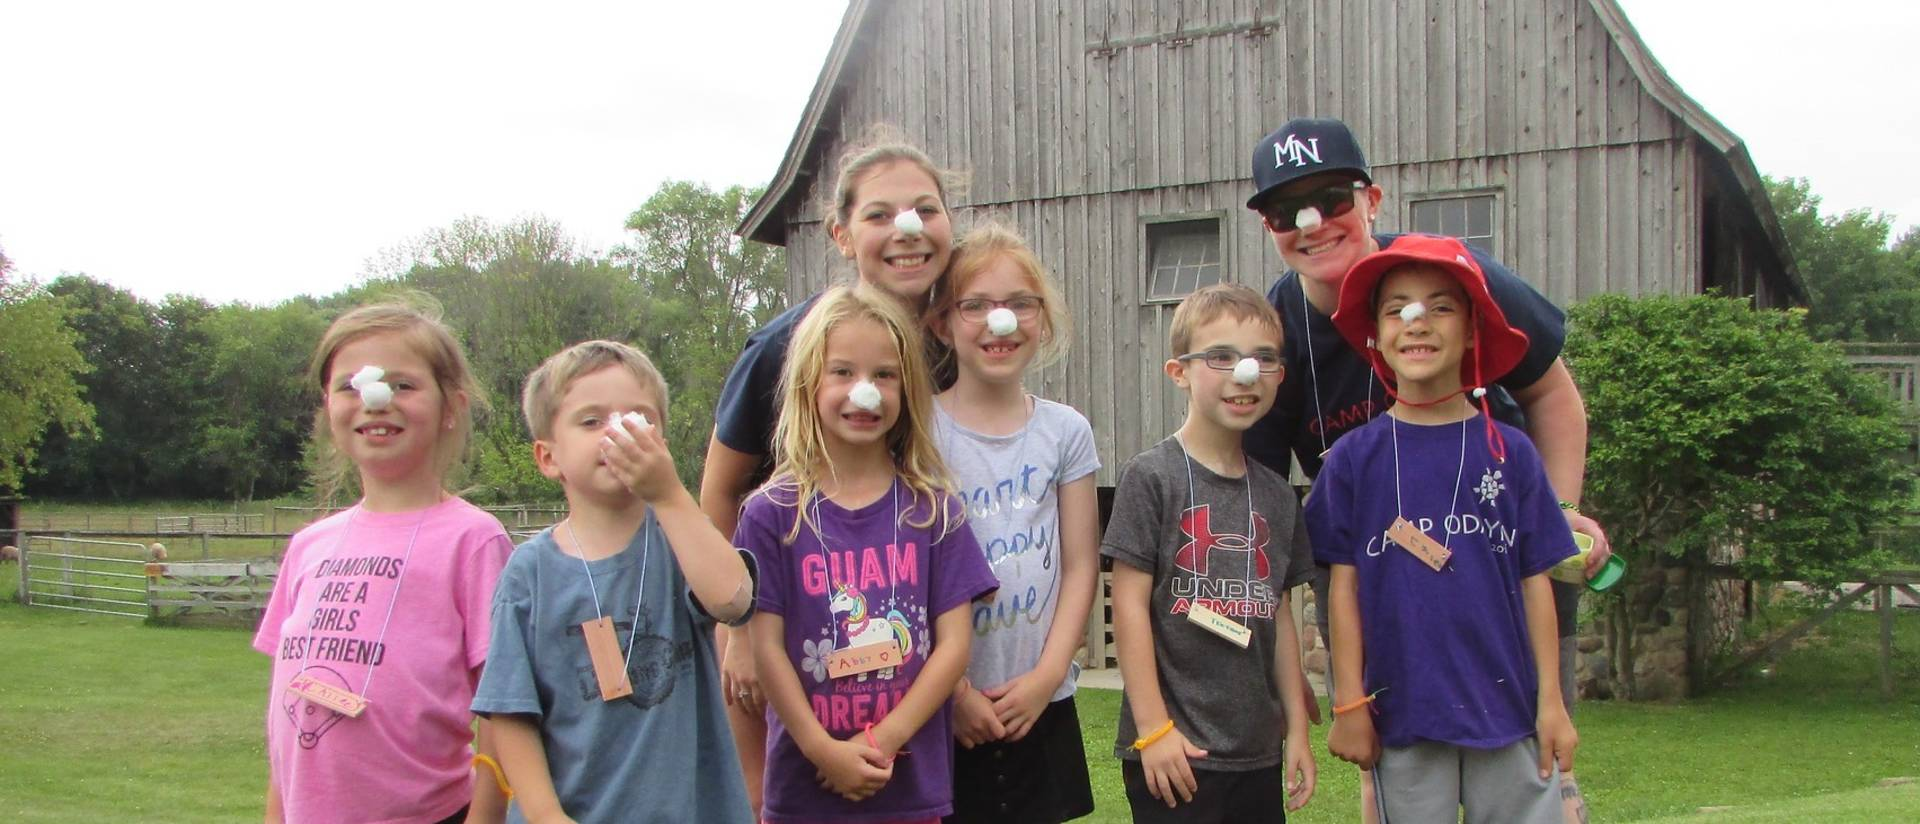 Alexa Shelton with campers